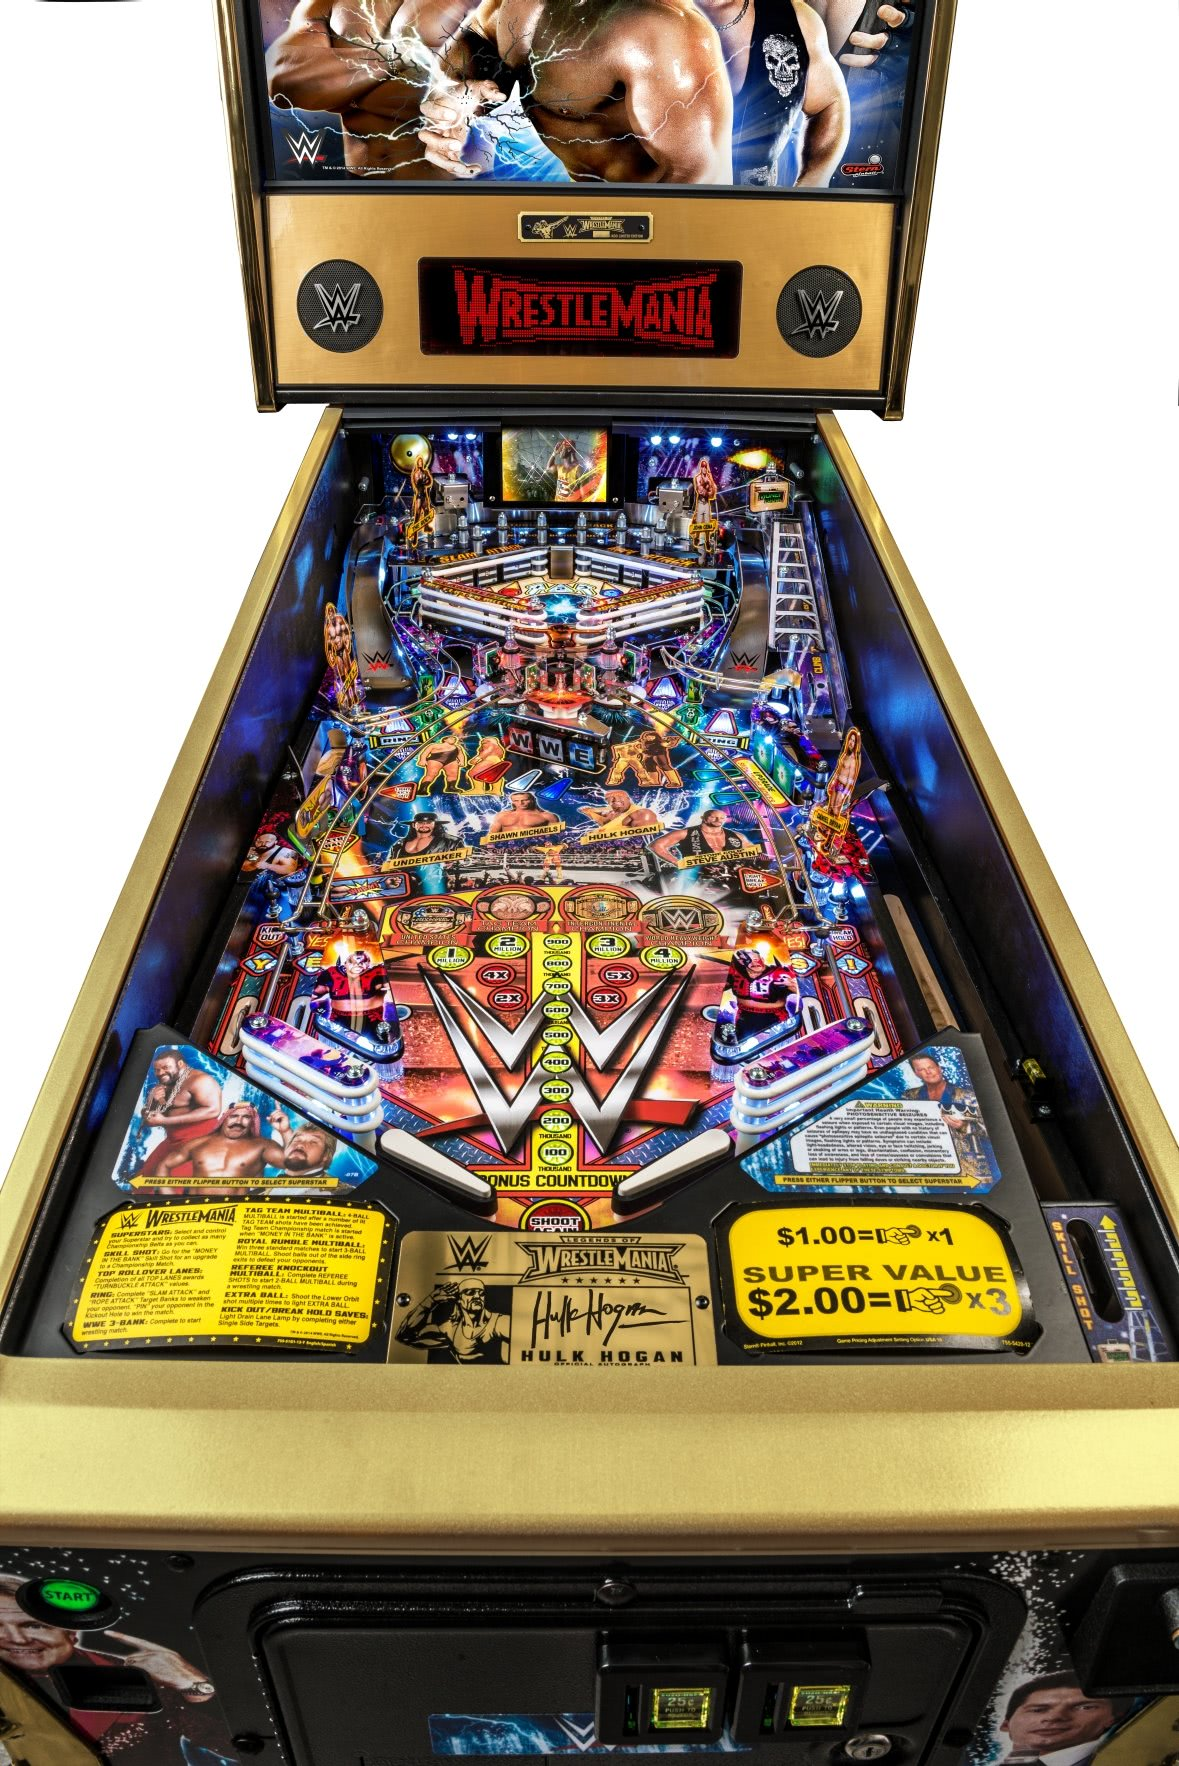 Neon Signs For Sale >> Stern WWE Wrestlemania LE Pinball Machine | Liberty Games